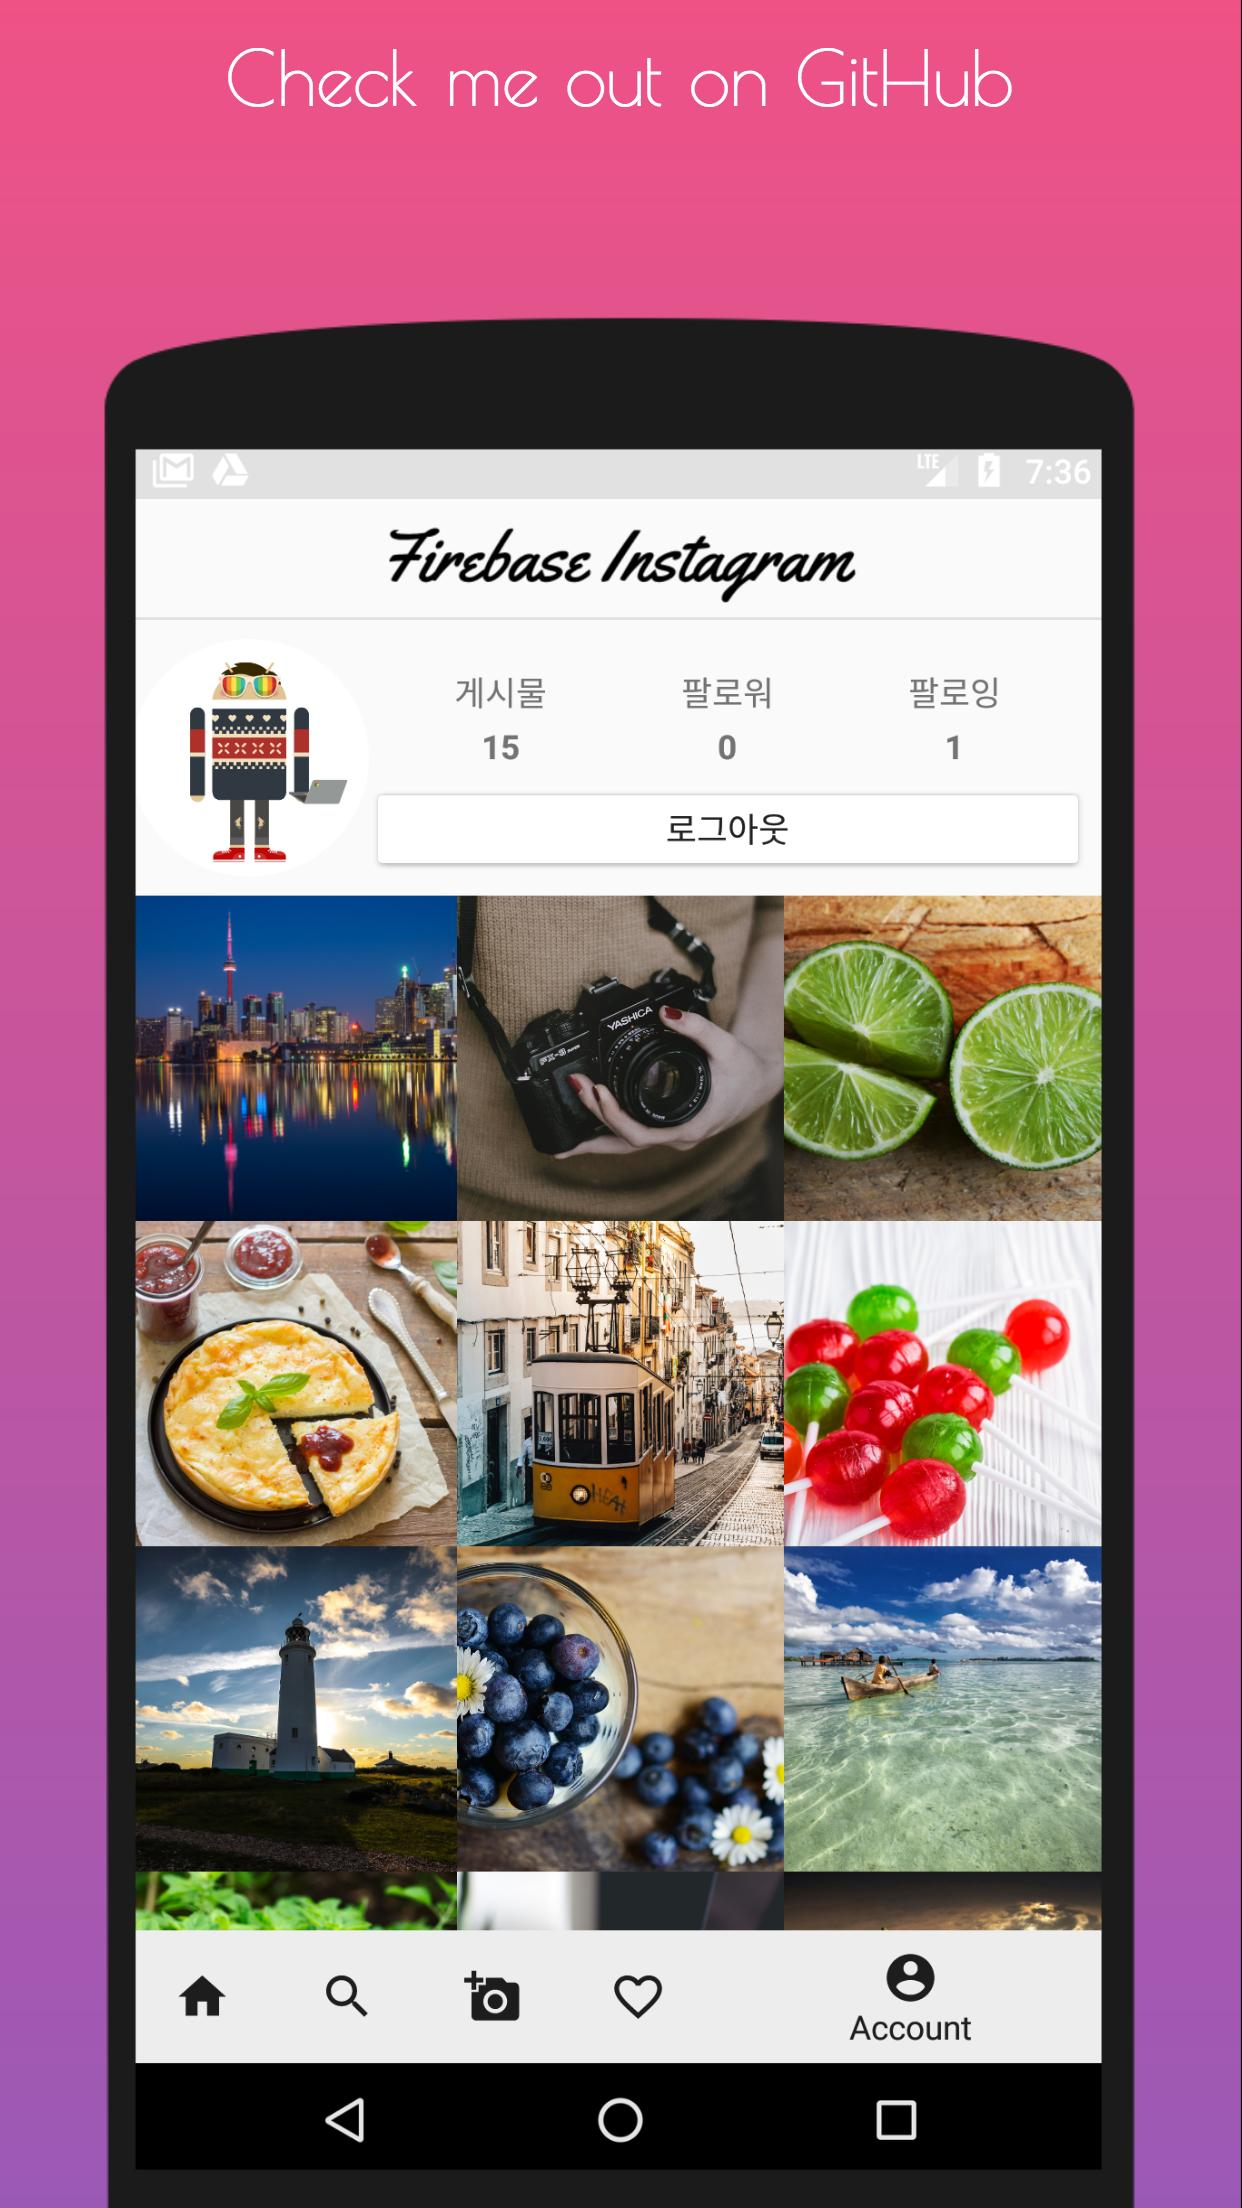 Firebase Instagram for Android - APK Download